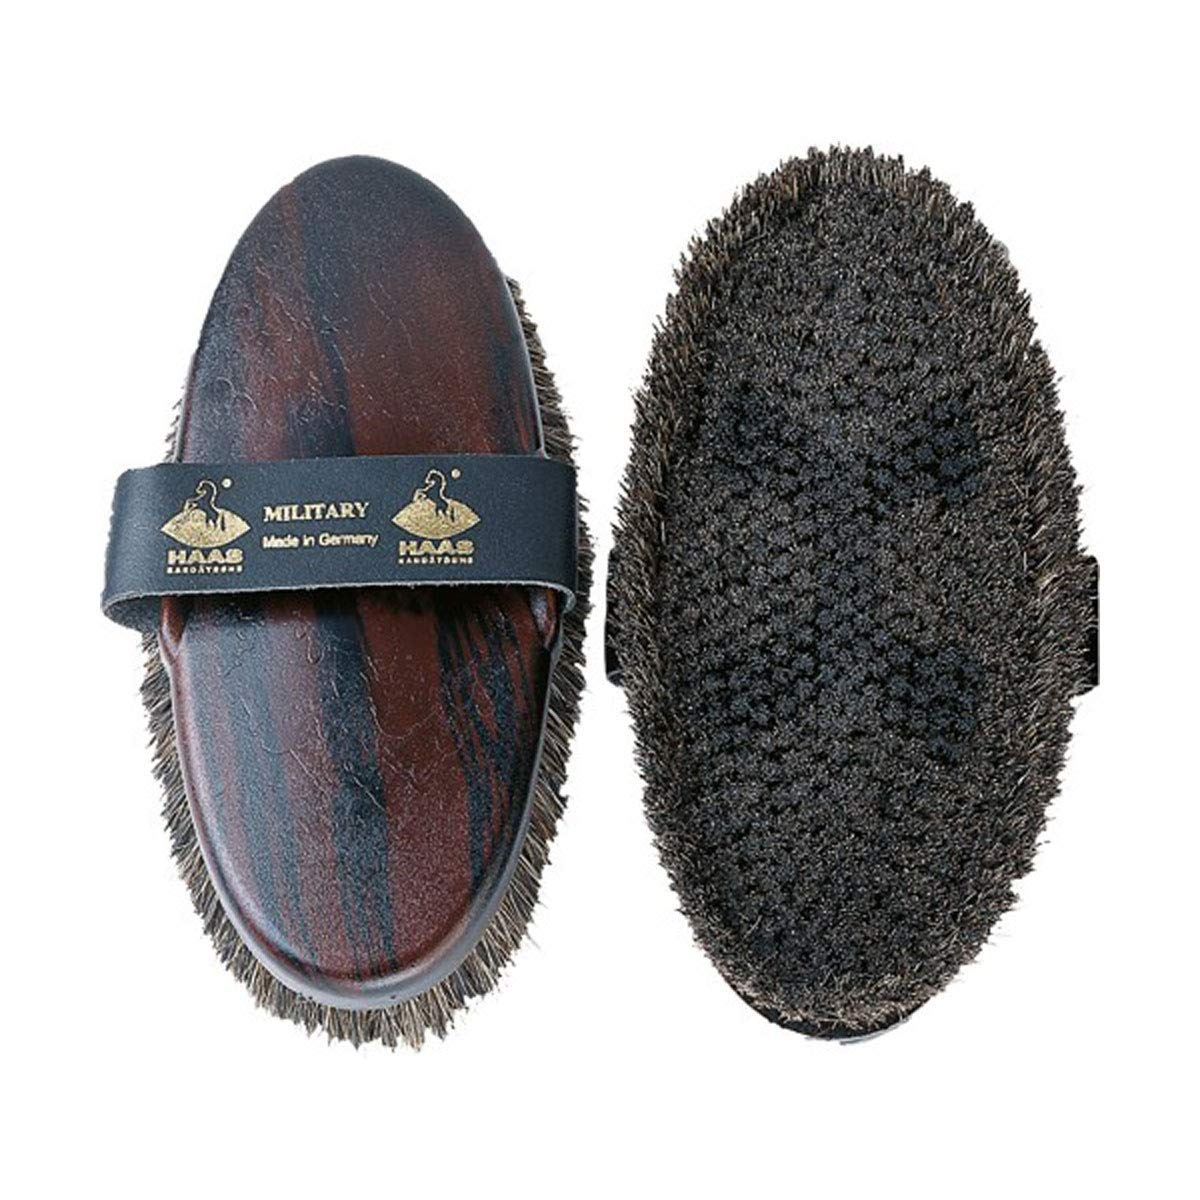 Haas Military Womens Body Brush (One Size) (Brown)